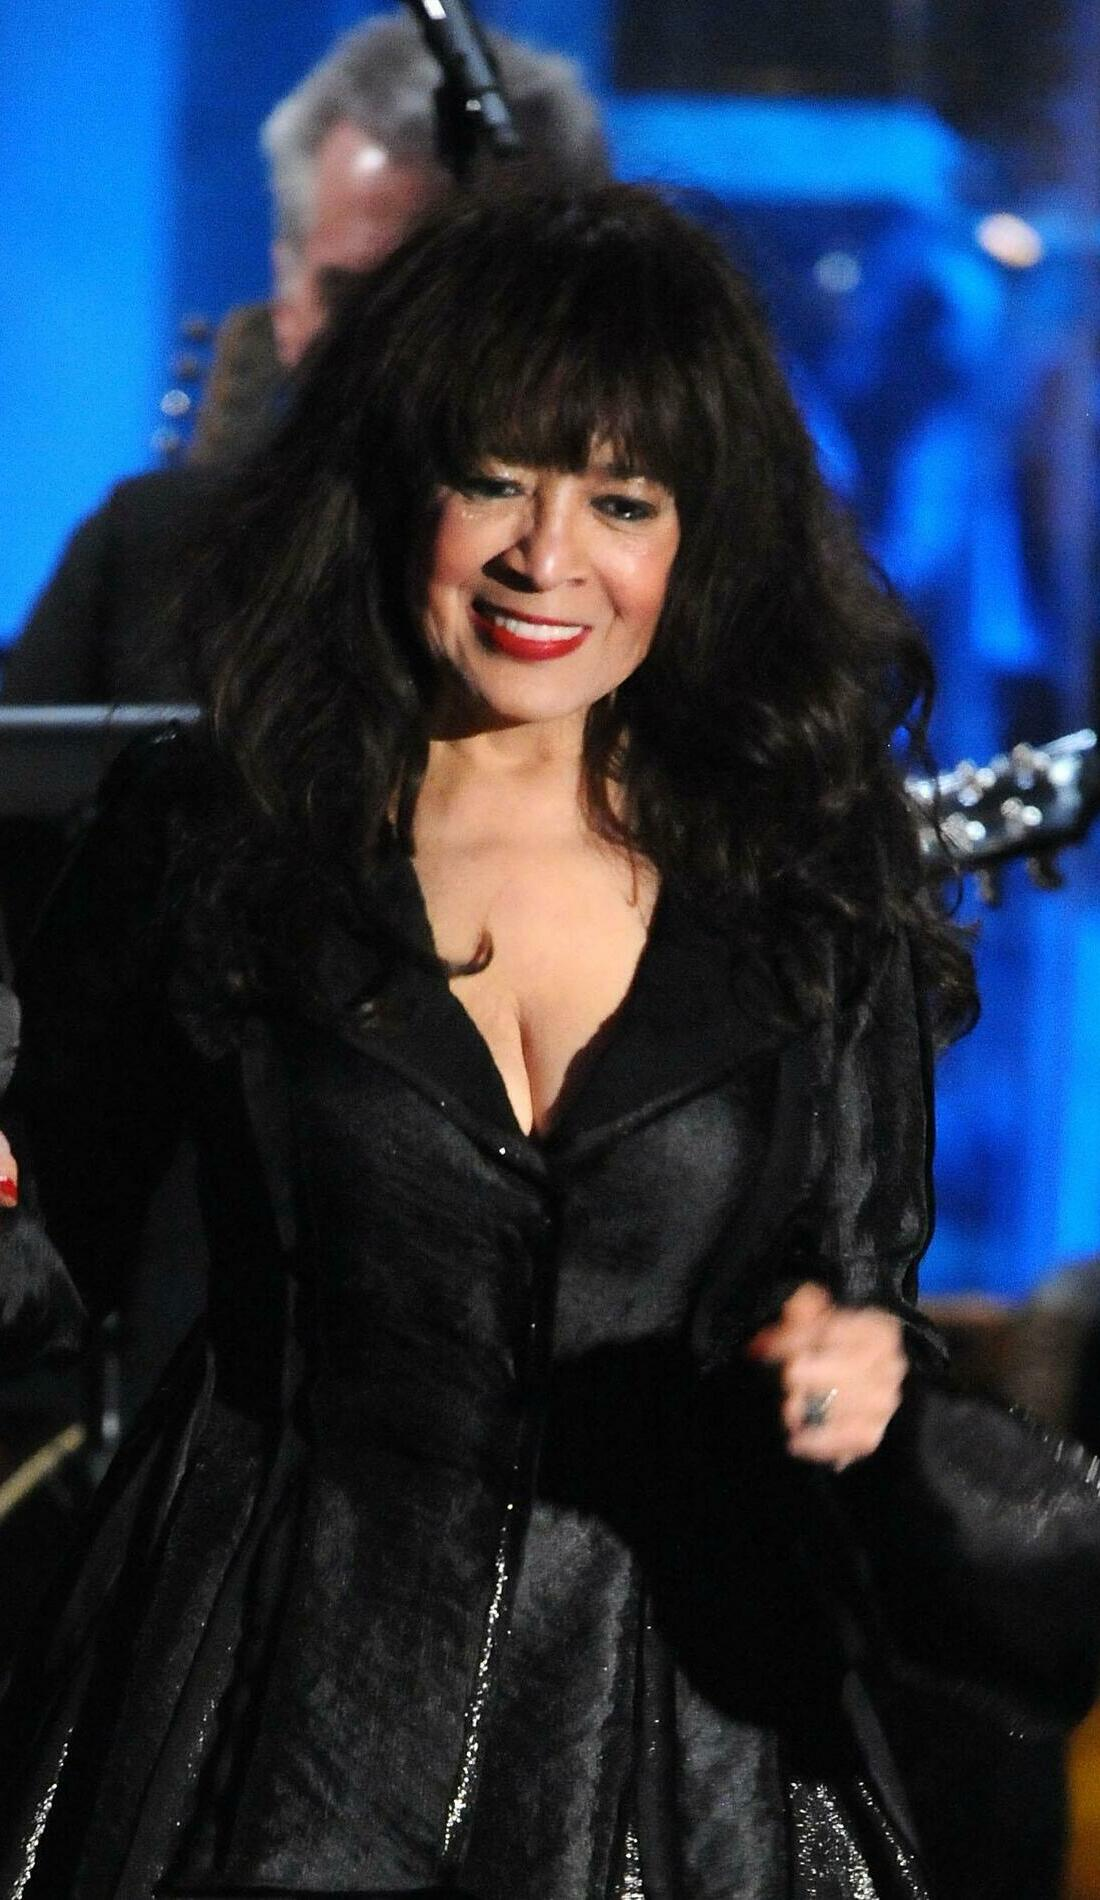 A Ronnie Spector live event